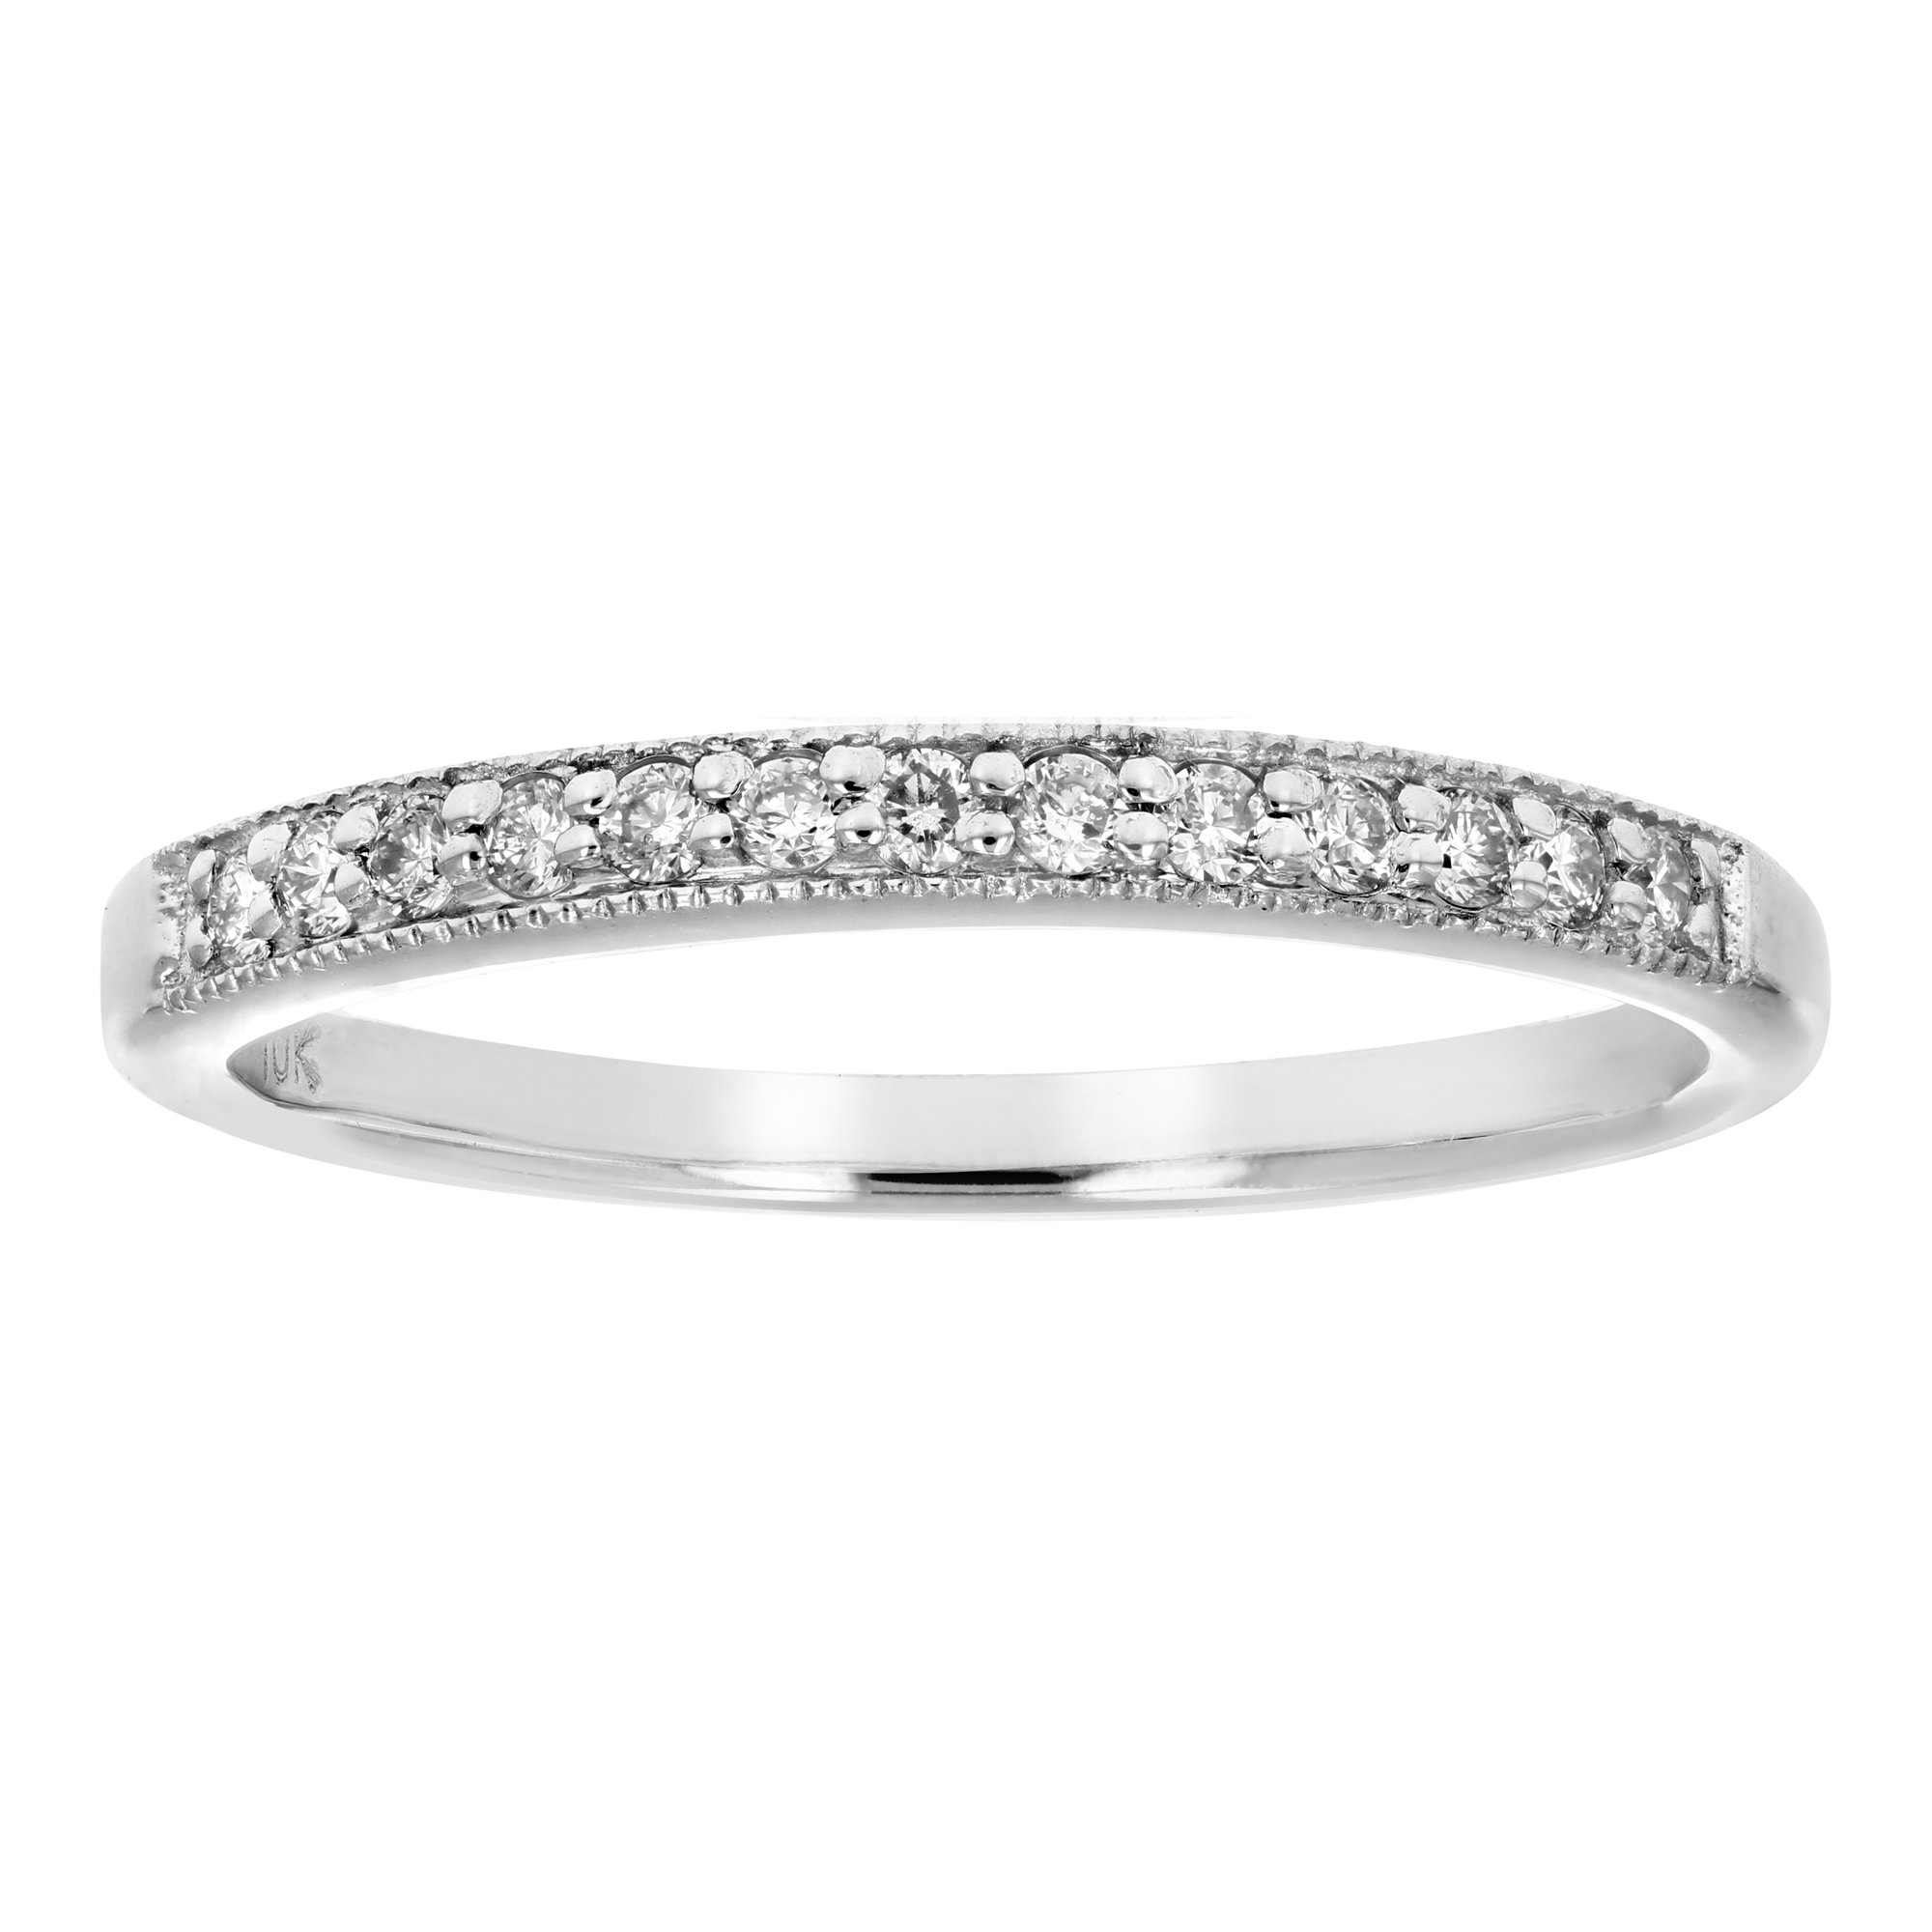 1/6 ctw Petite Diamond Wedding Band in 10K White Gold In Size 7